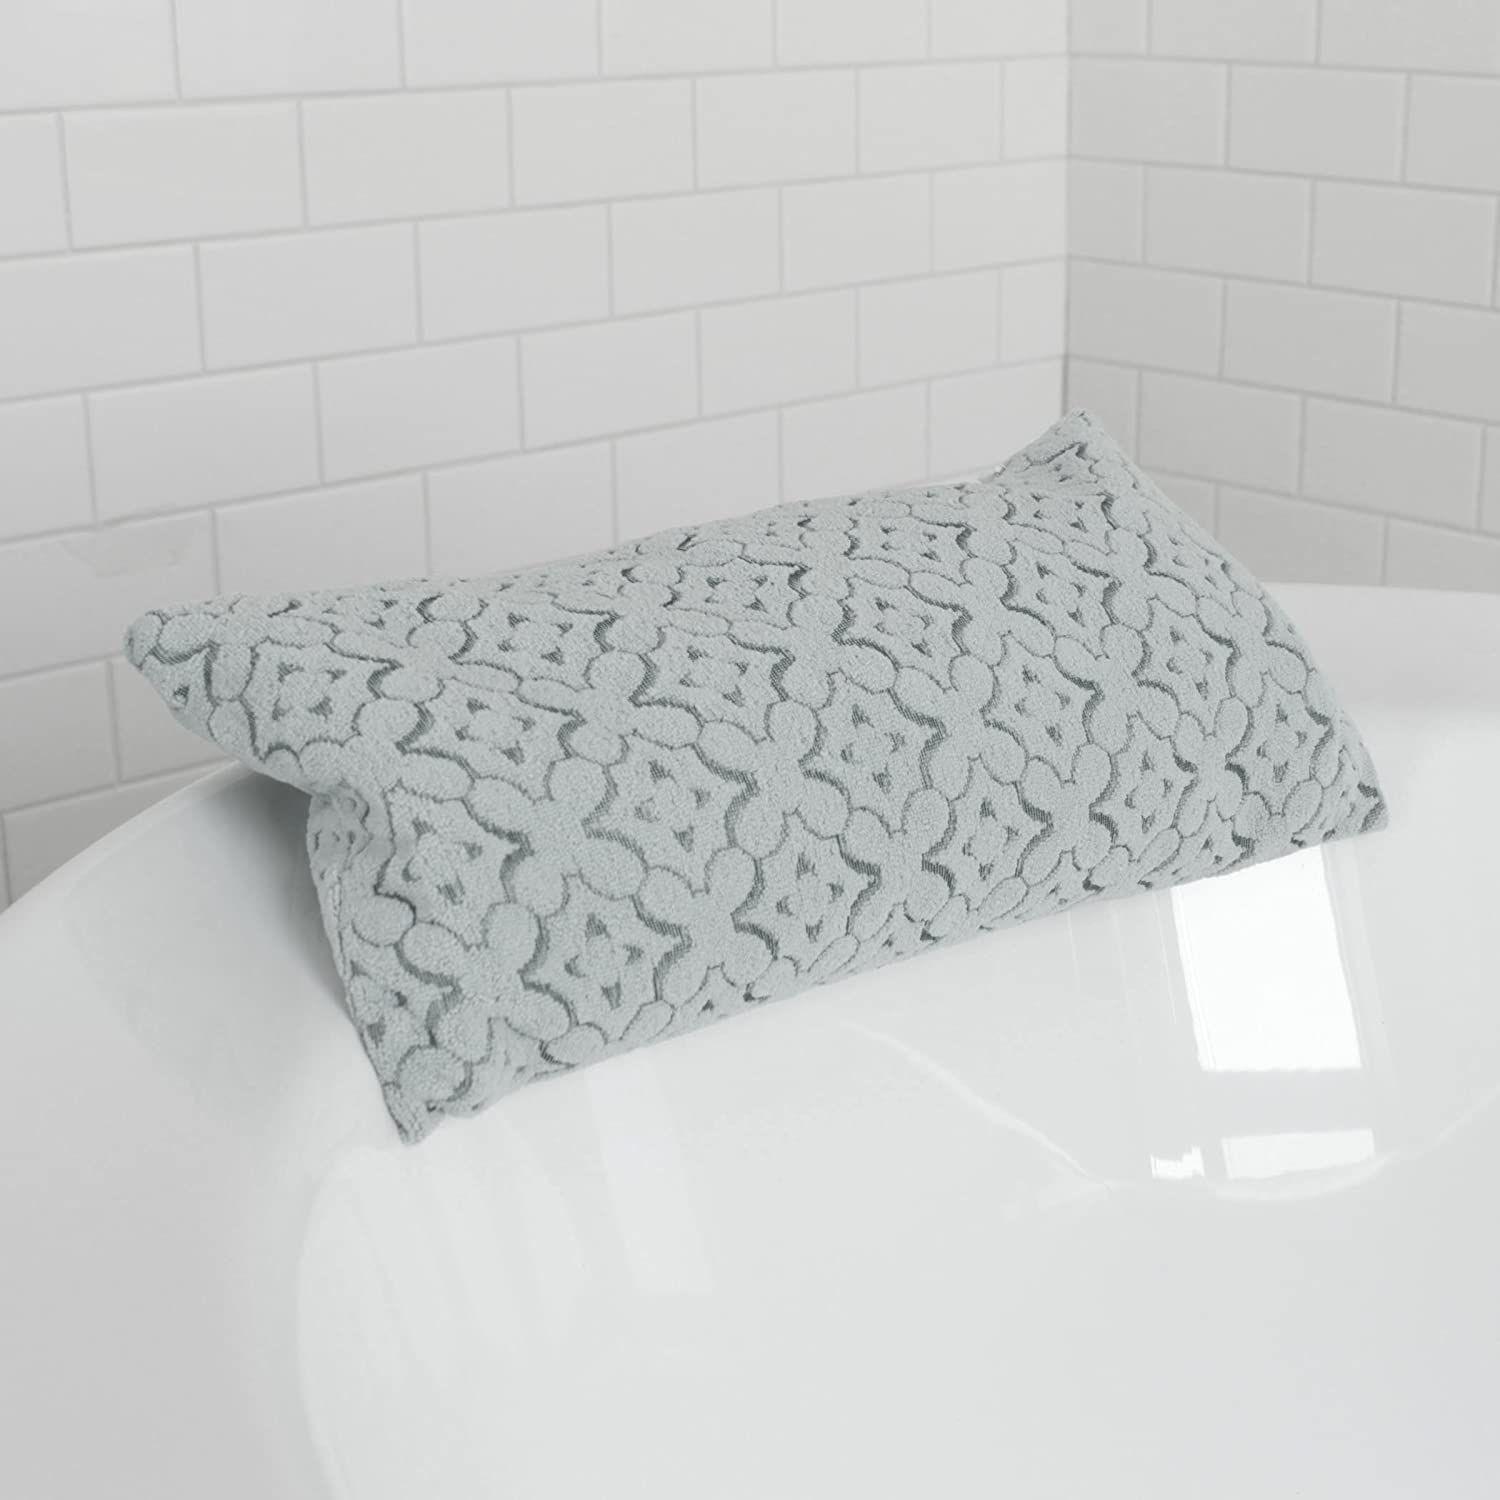 Splash Home Sharuz Beads Non Slip Bath Pillow Luxurious Cushion Spa for Bathtub, Hot Tub, Jacuzzi with 2 Strong Suction Cups, Supports Neck and Shoulders, 13.5 x 3.5 x 5.5, Silver 14SHARU/STSLVSPL